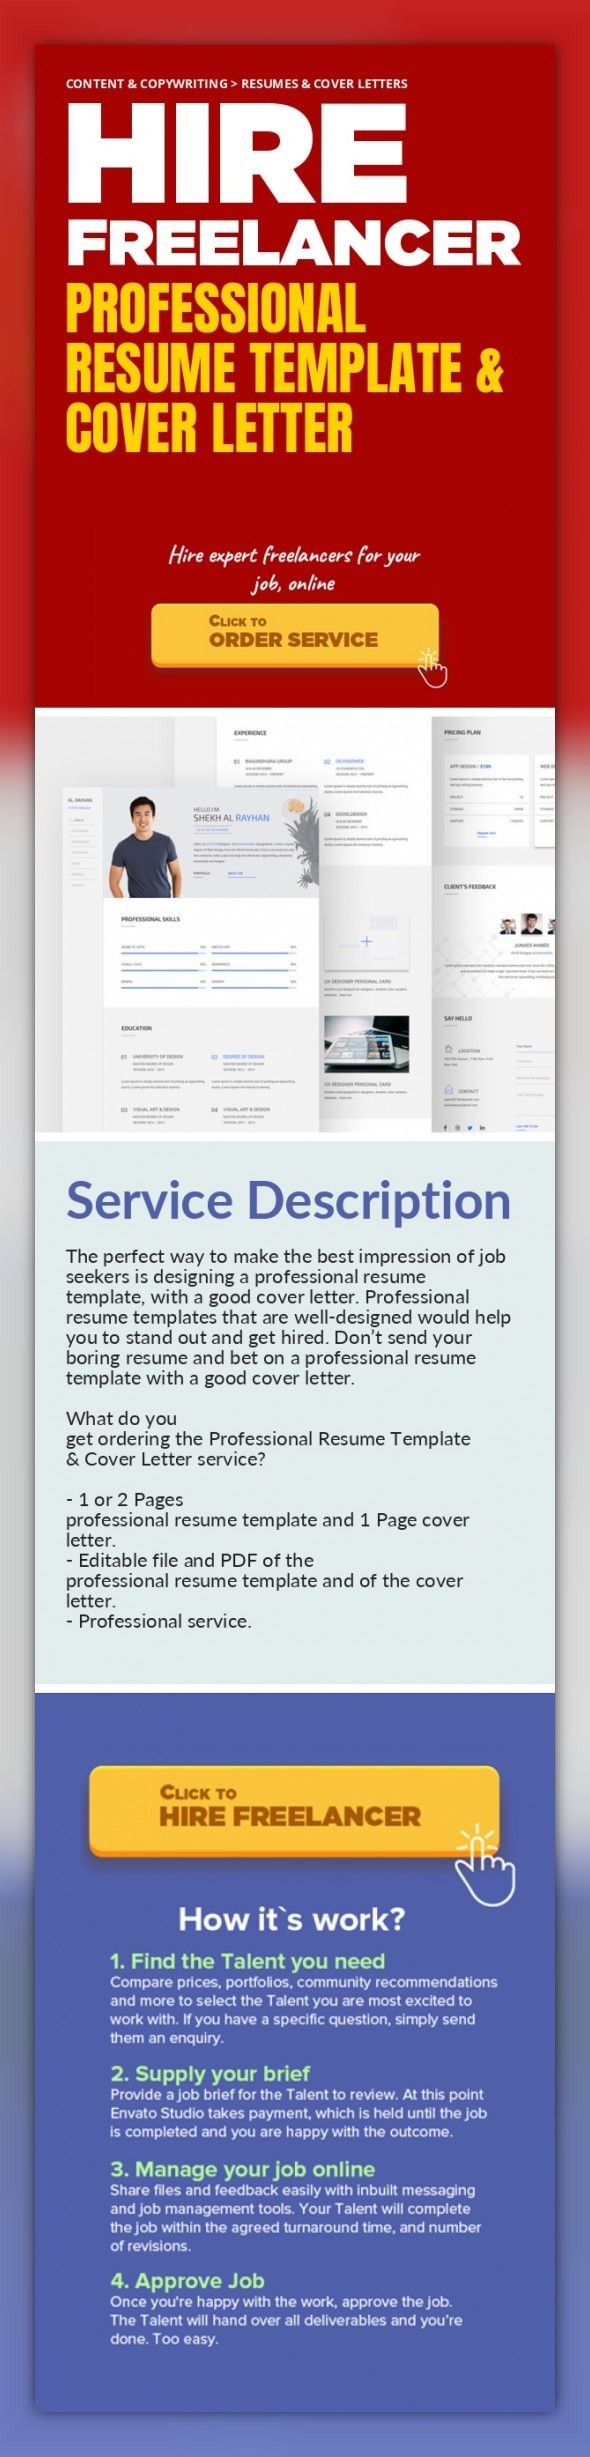 Professional Resume Template & Cover Letter Content & Copywriting, Resumes & Cover Letters   The perfect way to make the best impression of job seekers is designing a professional resume template, with a good cover letter. Professional resume templates that are well-designed would help you to stand out and get hired. Don't send your boring resume and bet on a professional resume template with a ...